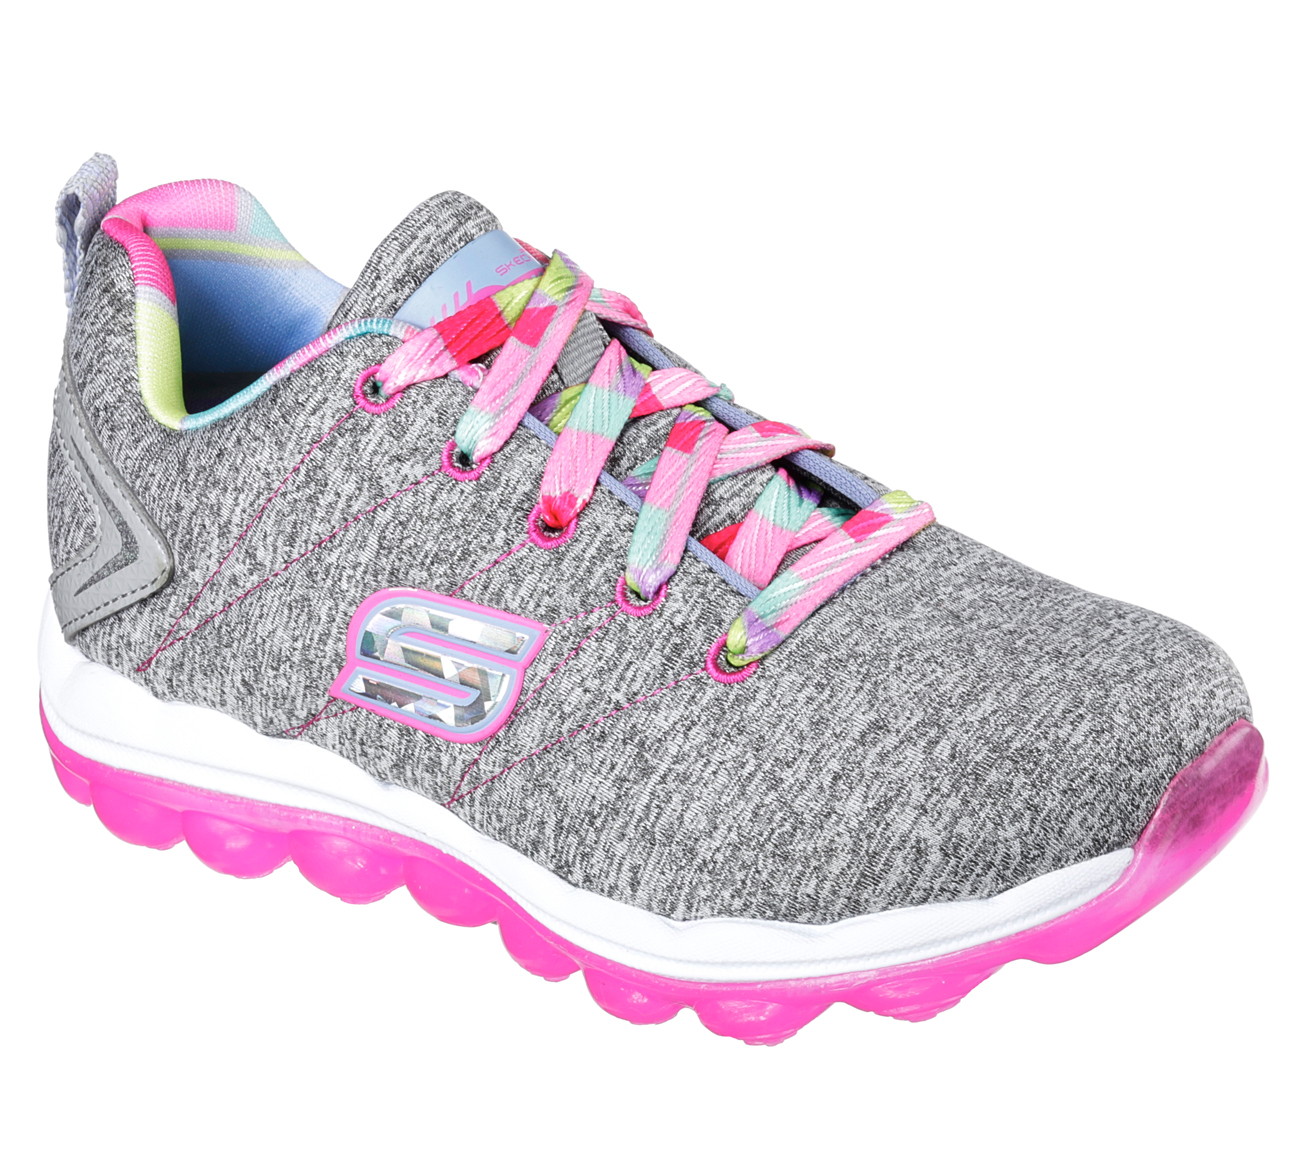 Skechers 80124LGYHP Girl's SKECH-AIR - BOUNCE LIFE  Training Shoes